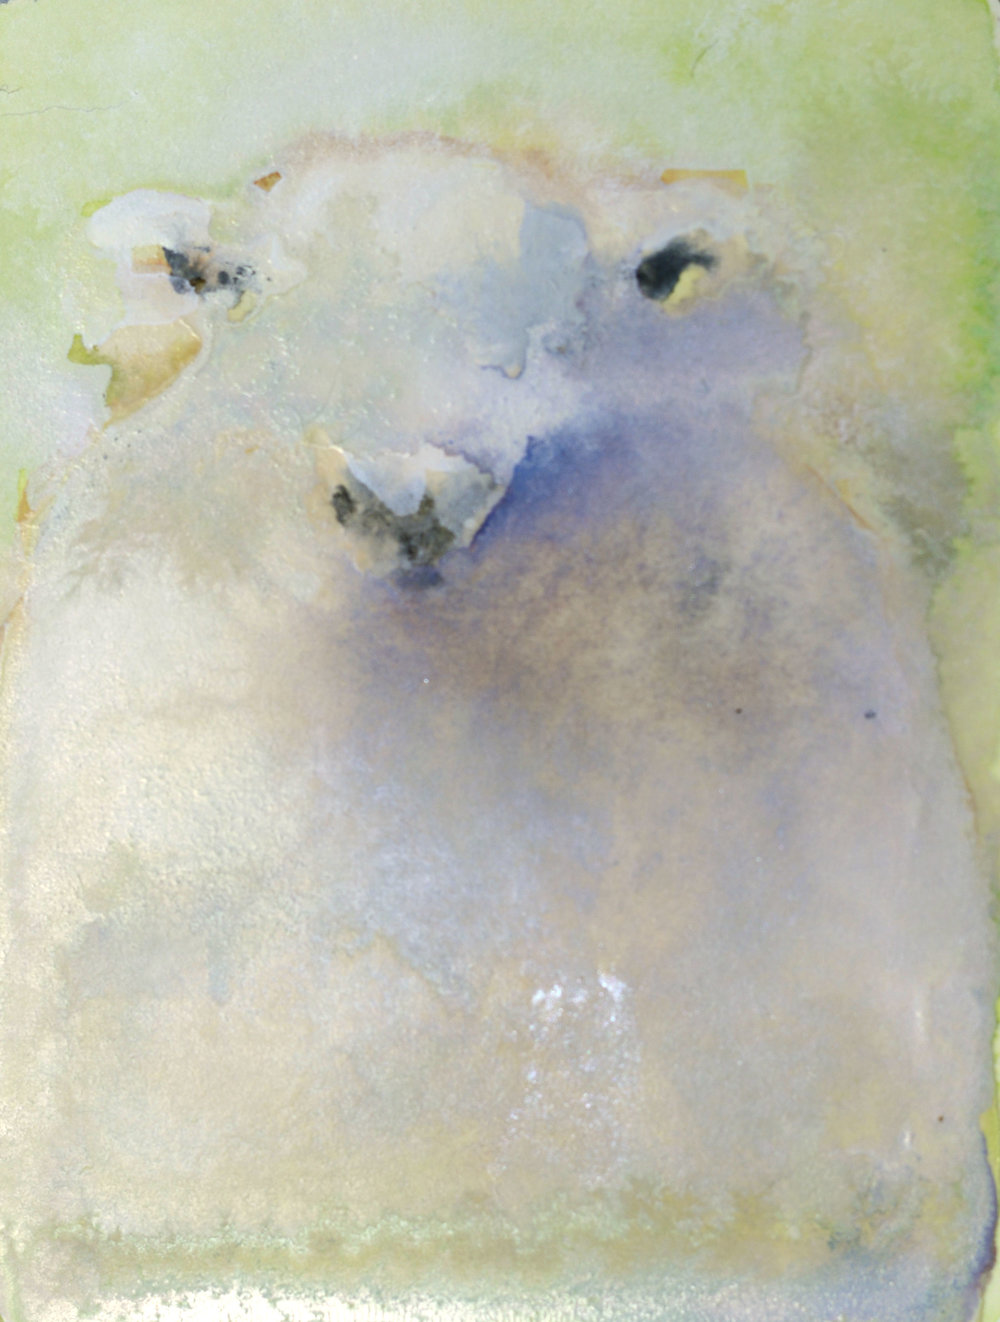 sheep no. 2_4x3 inset on 11x7.5 paper.jpg